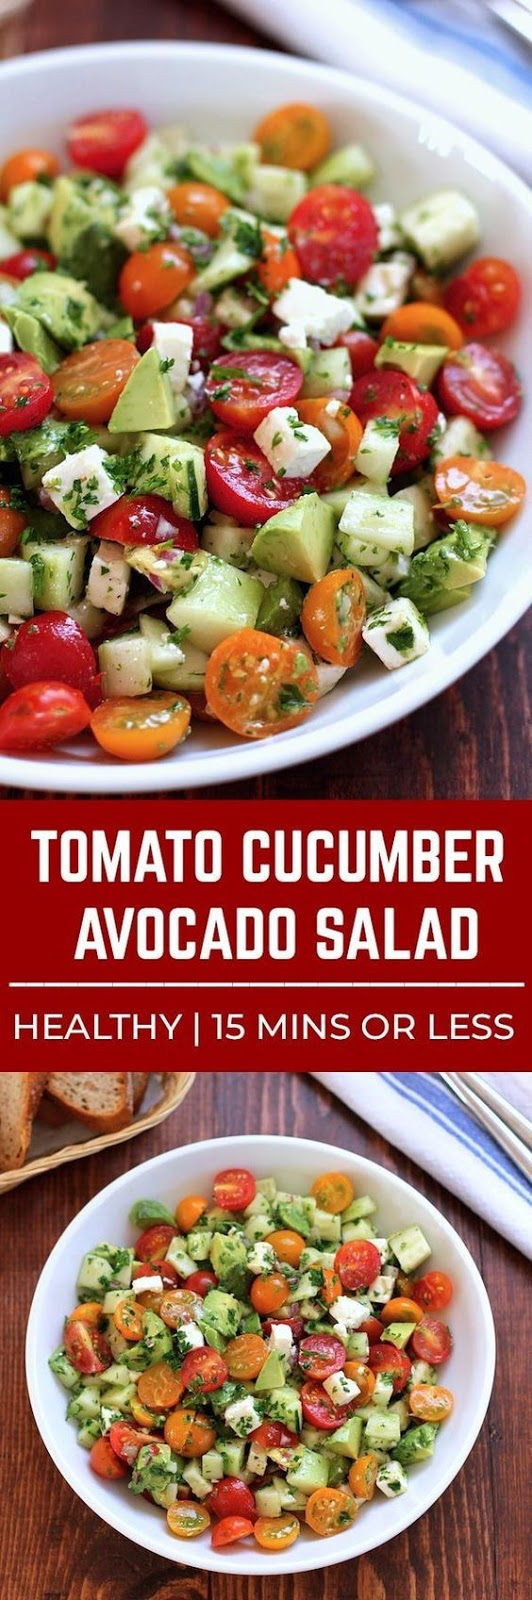 This tomato, cucumber, avocado salad is an easy, healthy, flavorful salad.  It's crunchy, fresh and simple to make.  It's a family favorite and ready in less than 15 minutes.